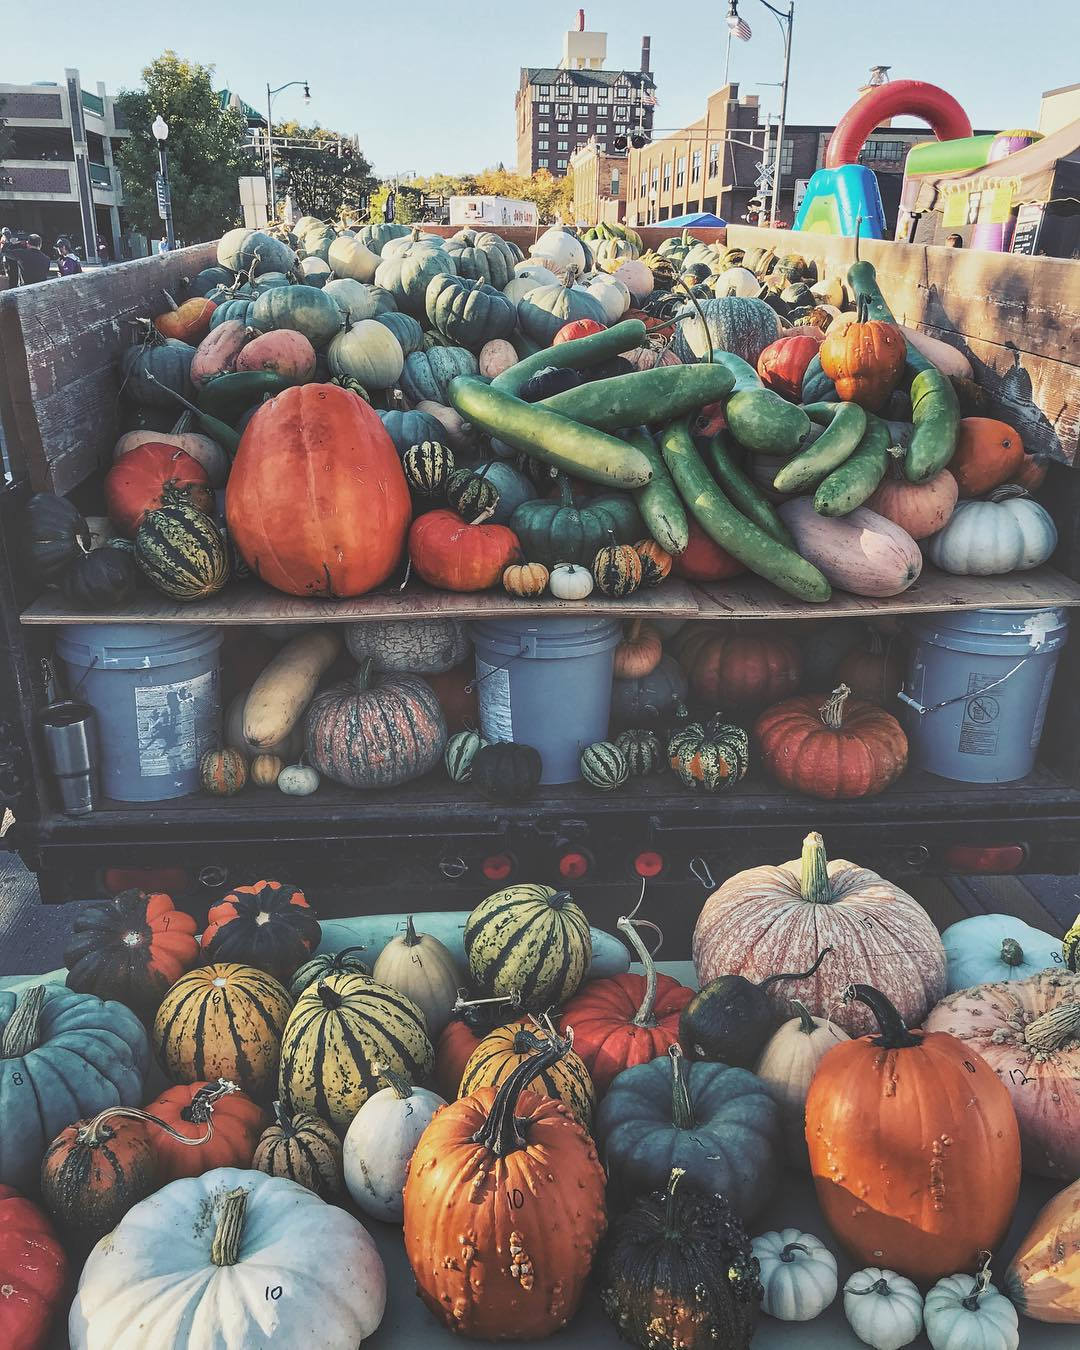 Pumpkin Festival, Giveaway, and Countless Balloons